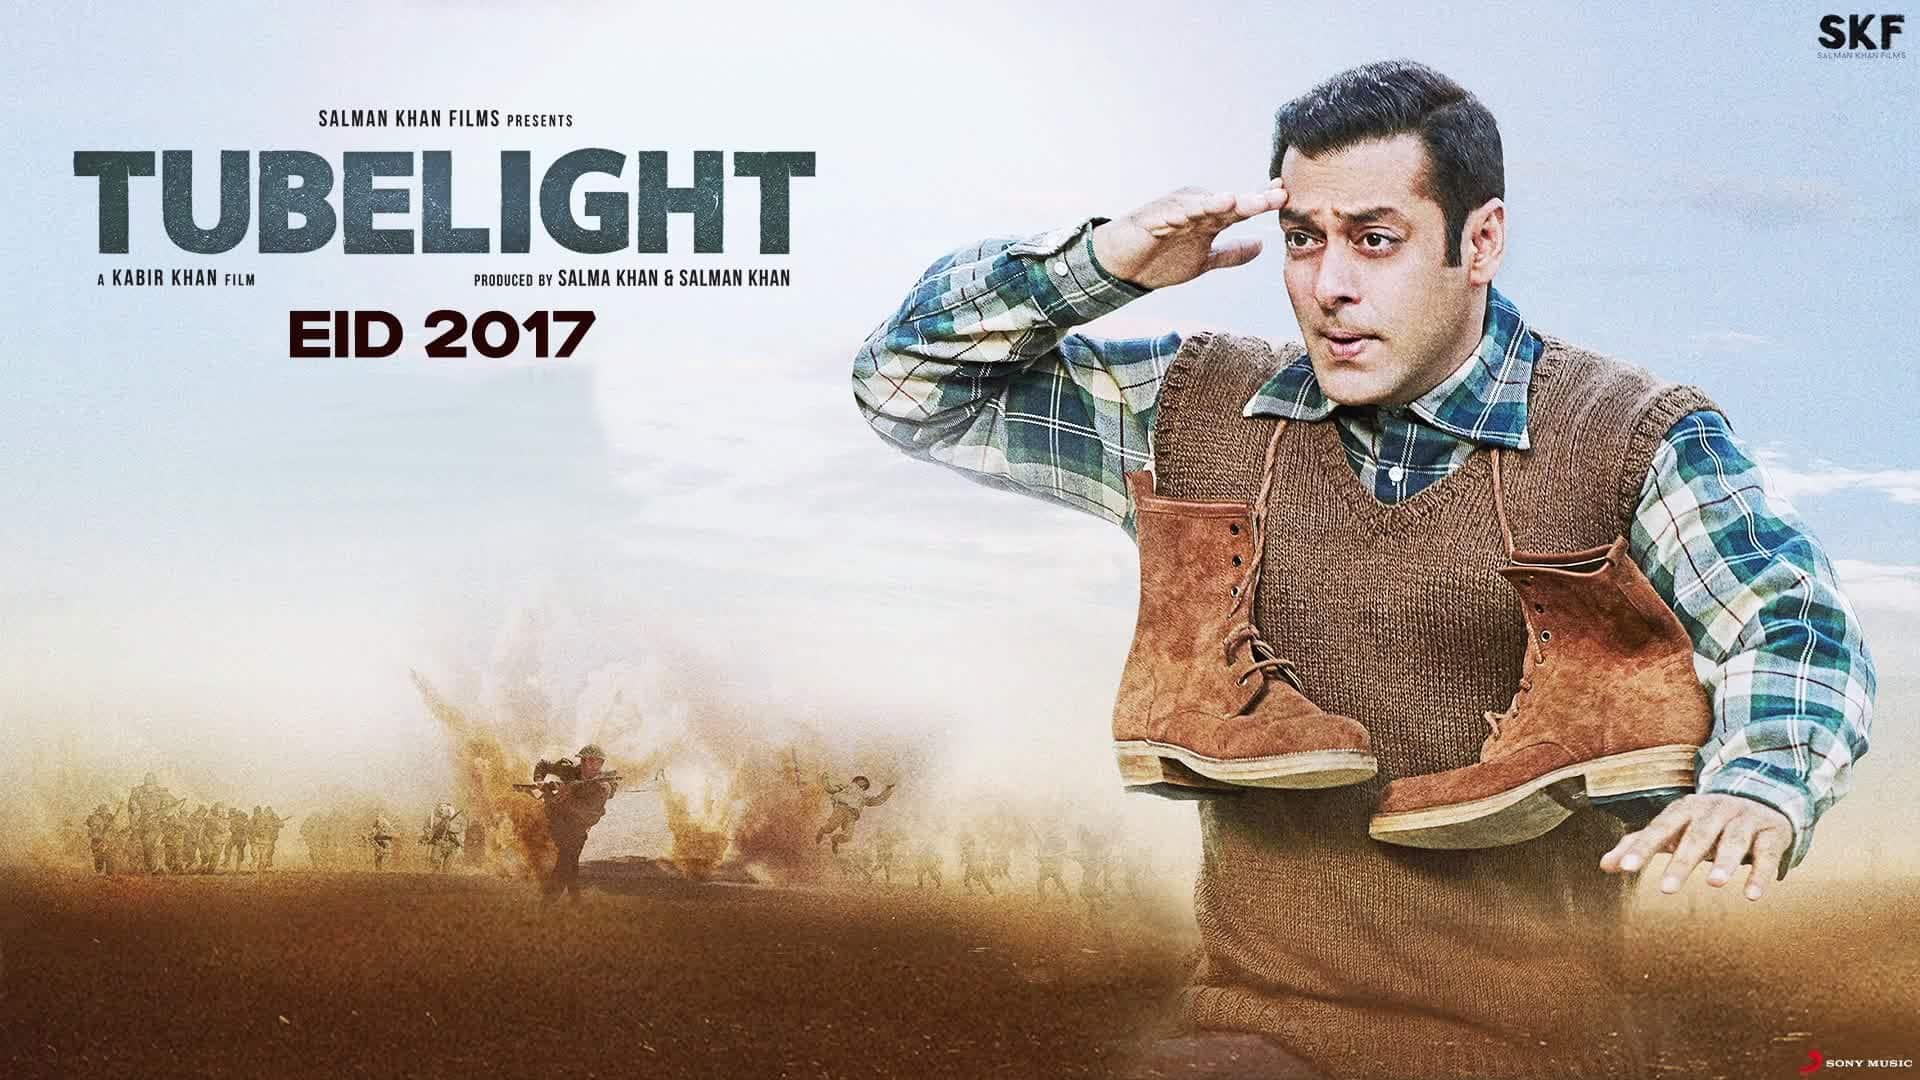 Tubelight To Have 'Short' Run Time